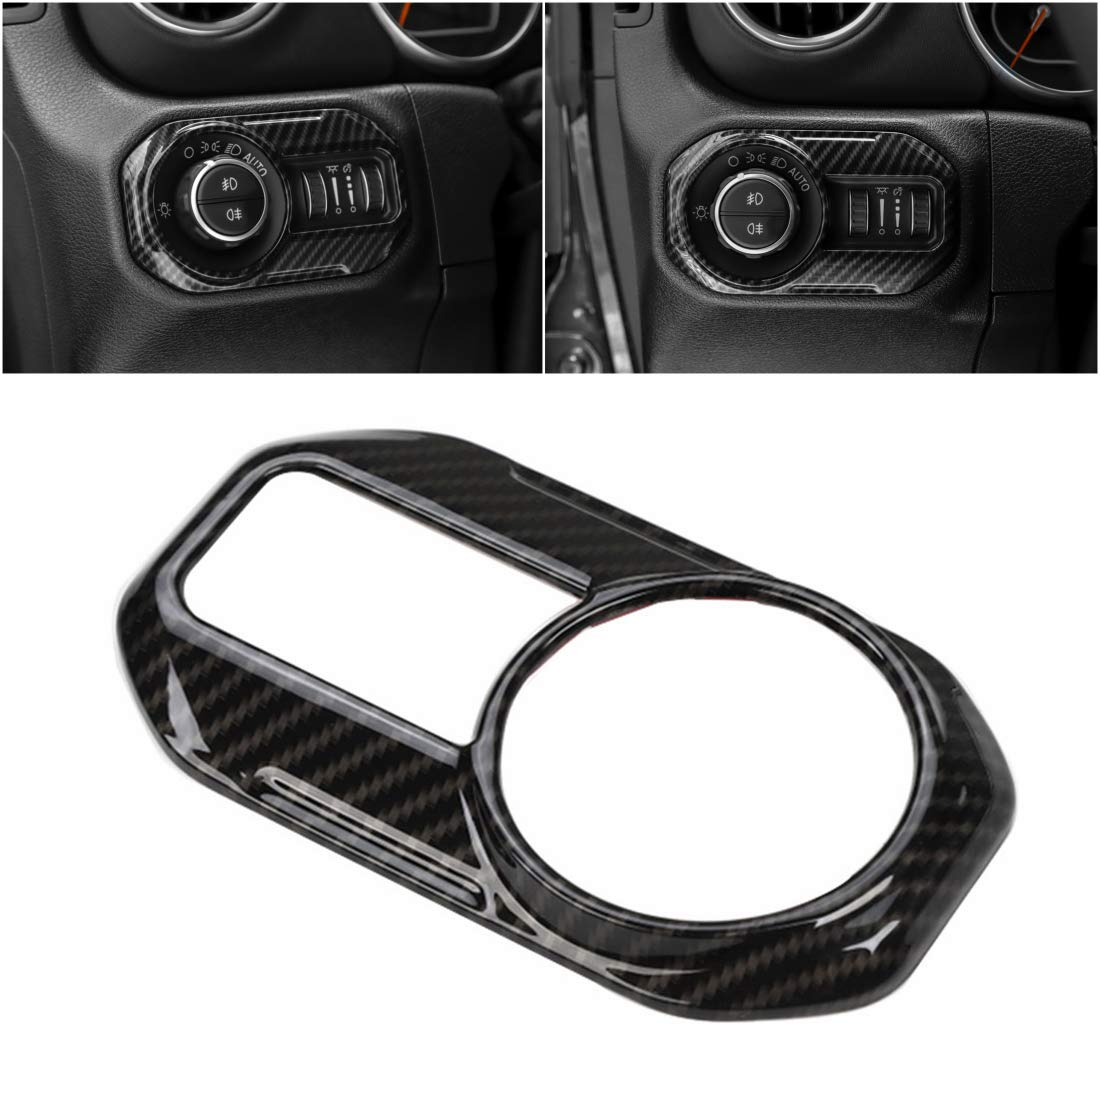 YOCTM for Jeep Wrangler JL 2018 2019 Parts Accessories Headlight Head Lamp Switch Button Decoration Trim Cover Stickers Car Styling Silver